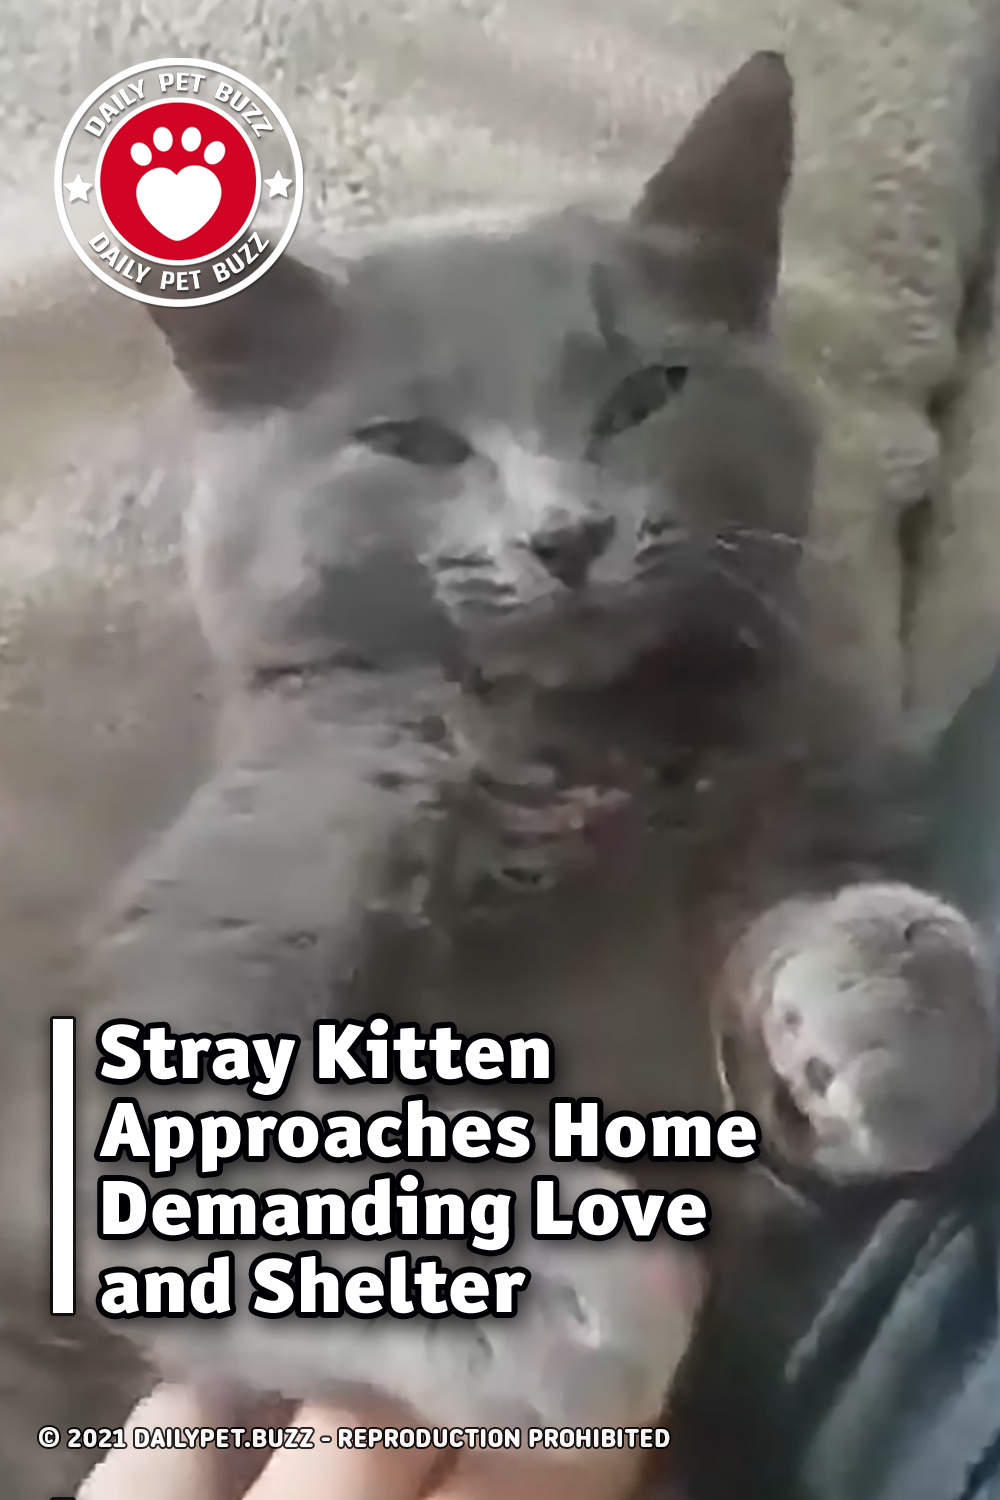 Stray Kitten Approaches Home Demanding Love and Shelter